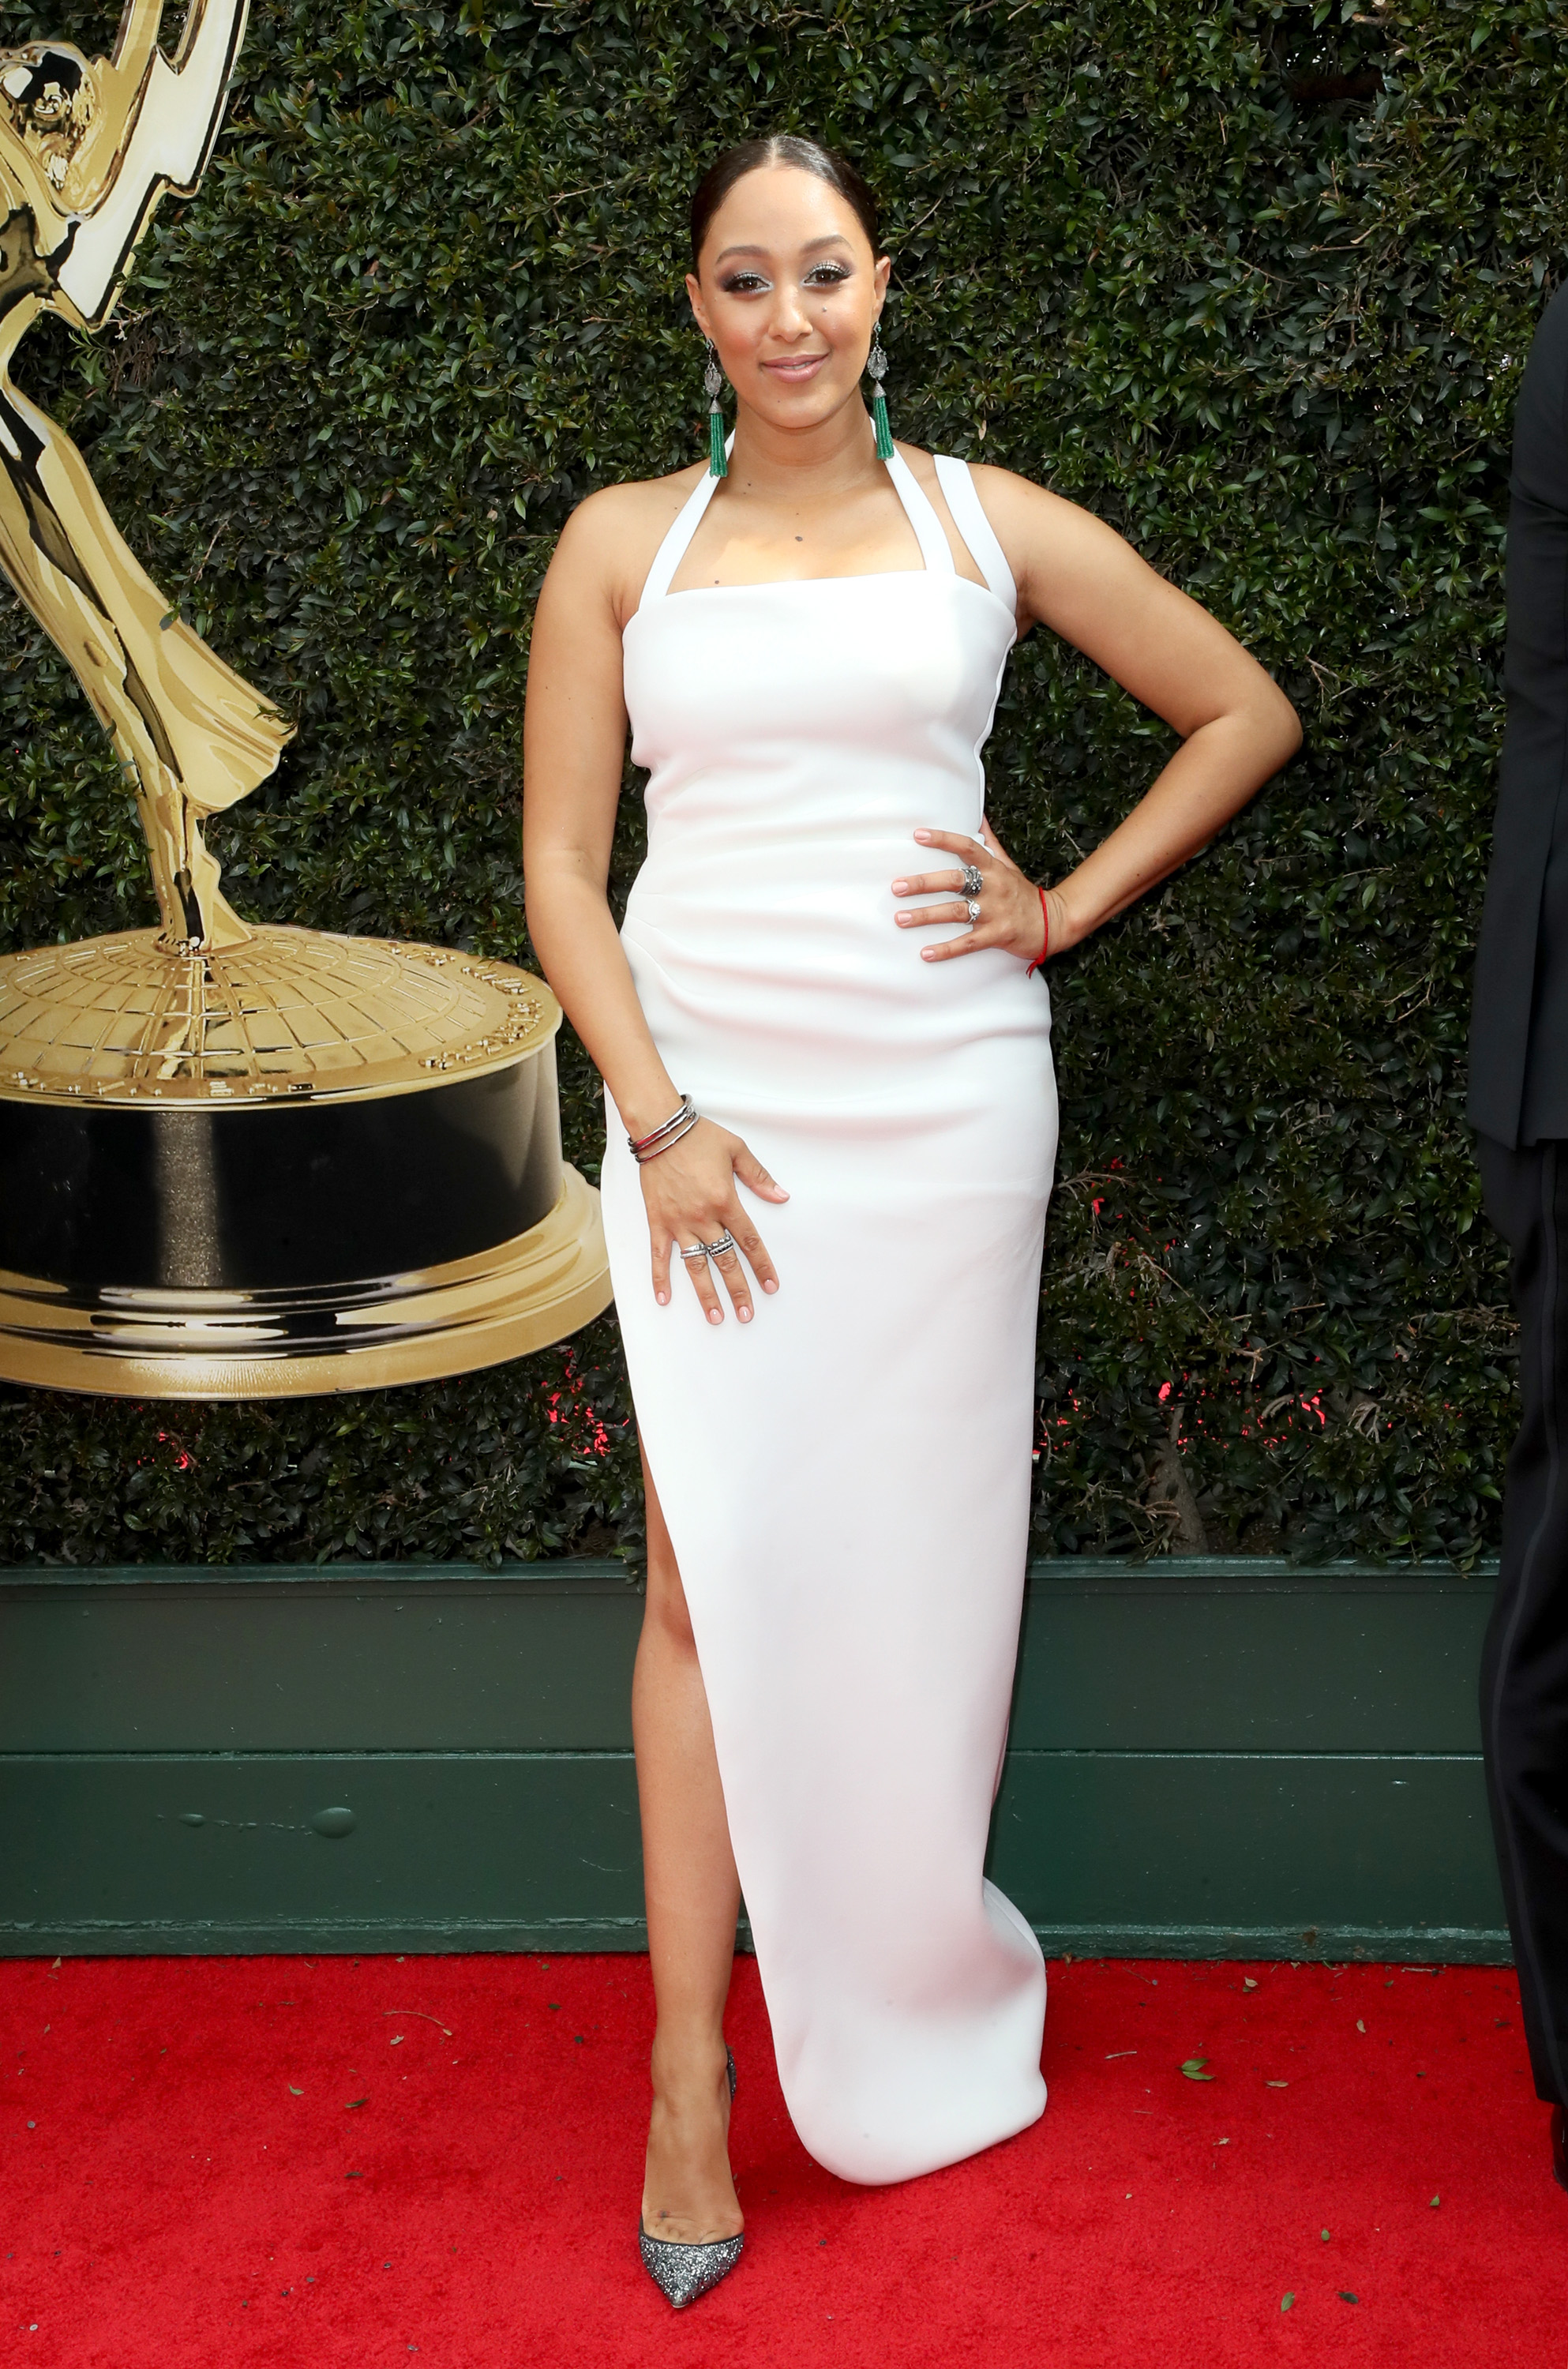 Tamera Mowry attends the 45th annual Daytime Emmy Awards at Pasadena Civic Auditorium on April 29, 2018 in California. (Photo by David Livingston/Getty Images)